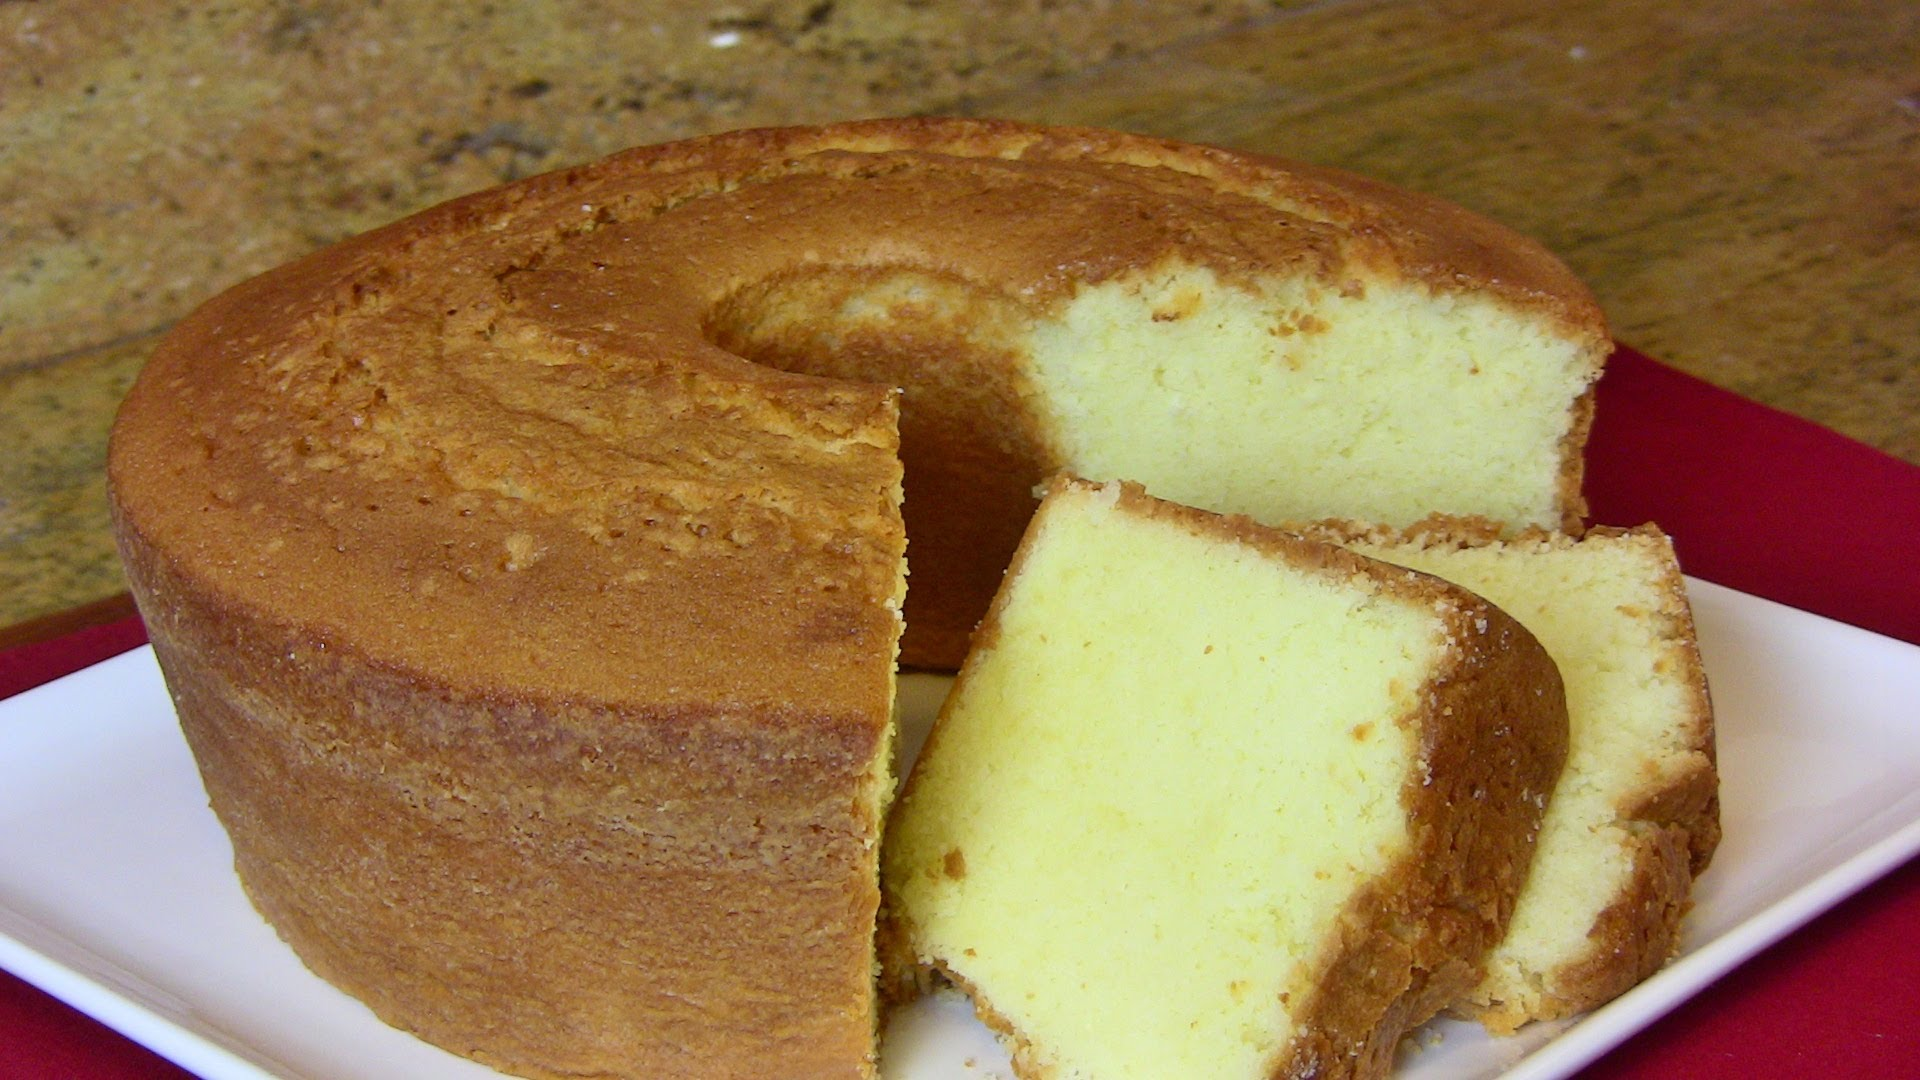 How To Make A Butter Pound Cake From Scratch